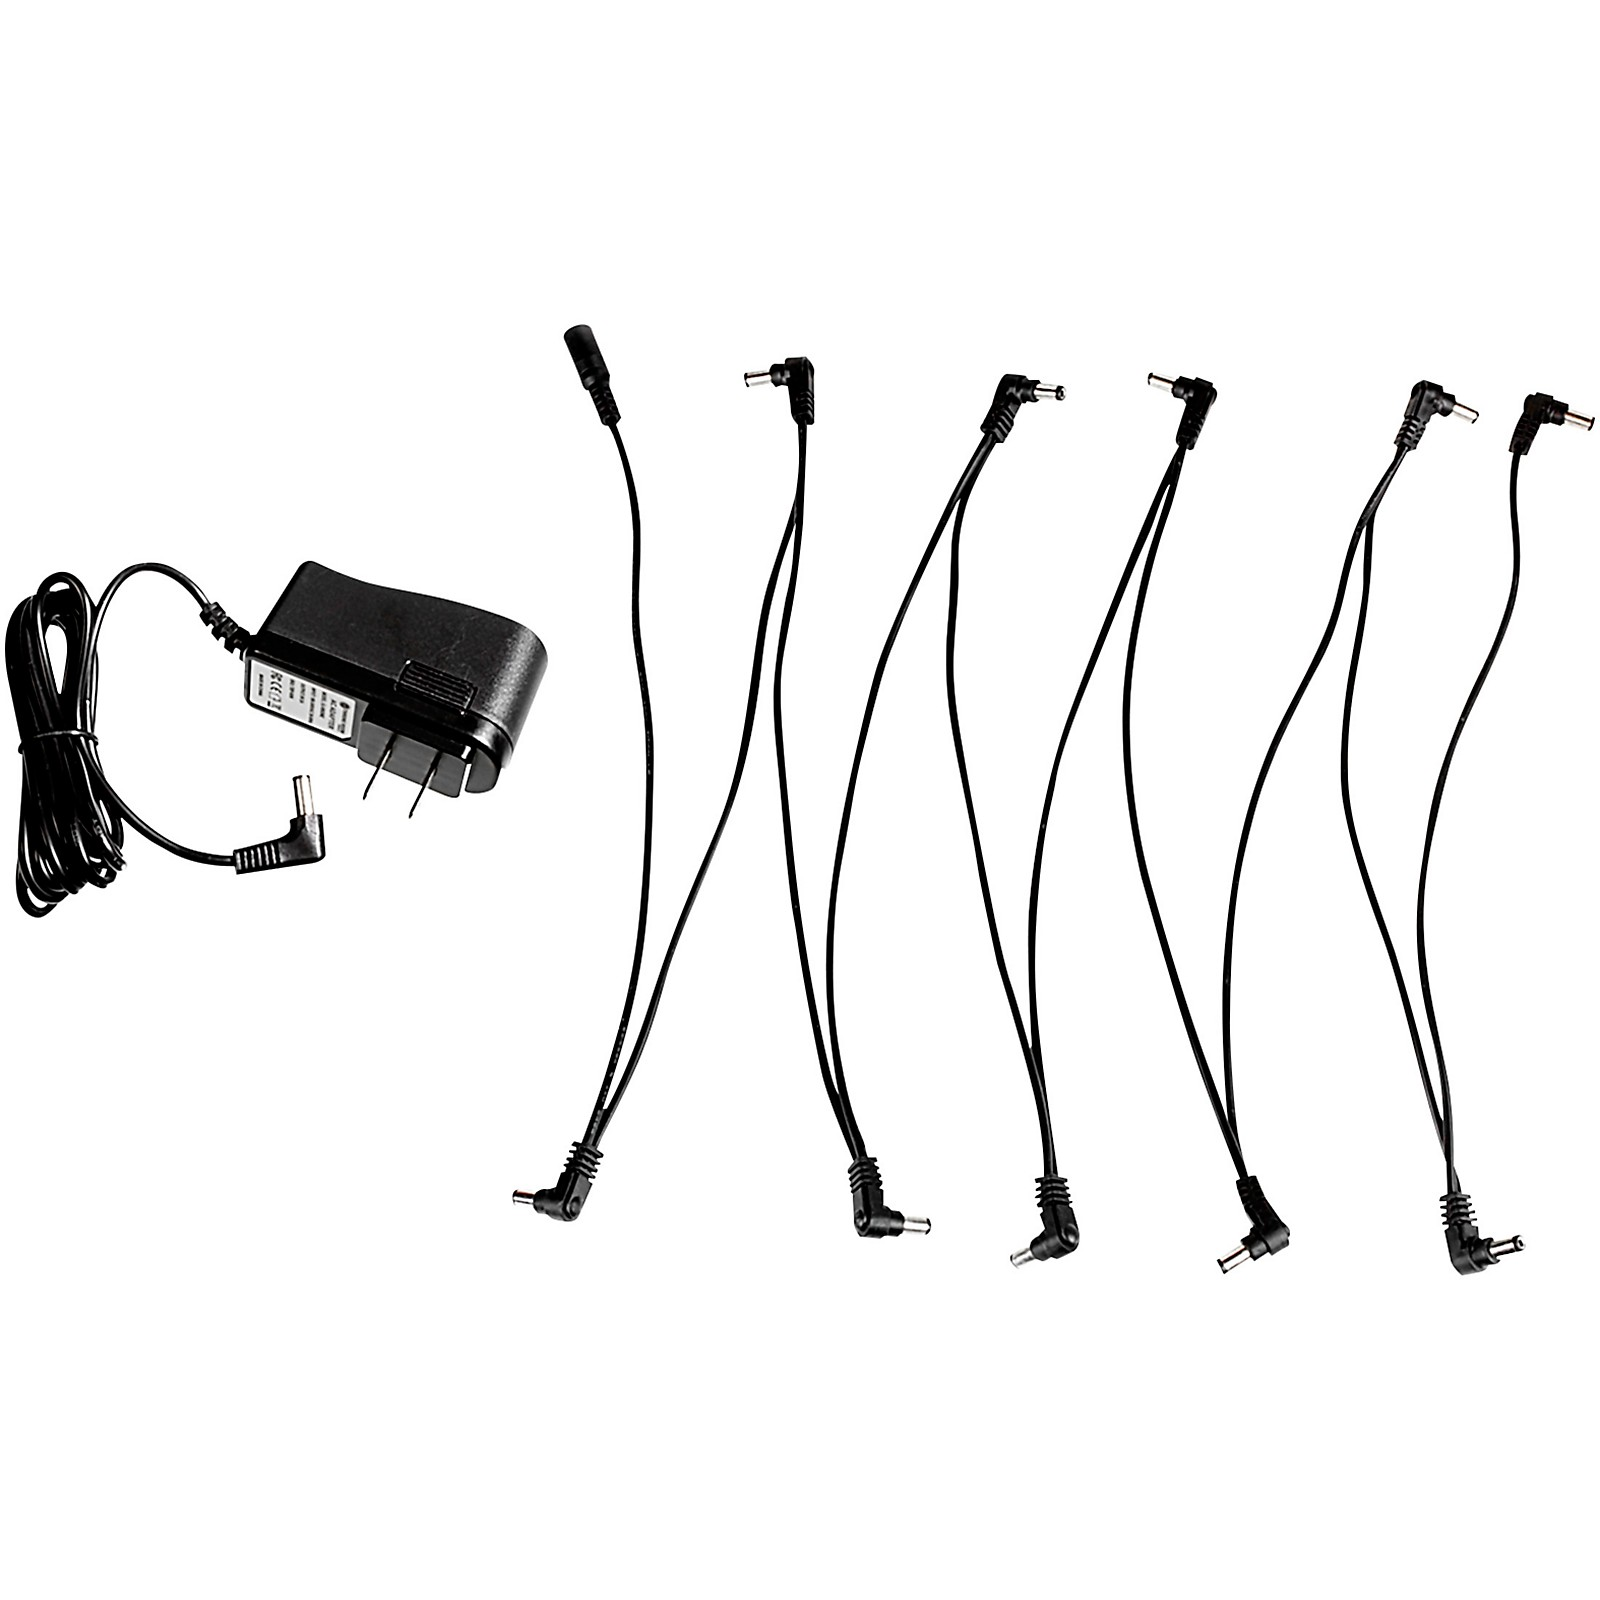 Throne Room Pedals 2,000mA 9V DC Power Supply Kit with 10-Plug Daisy Chain